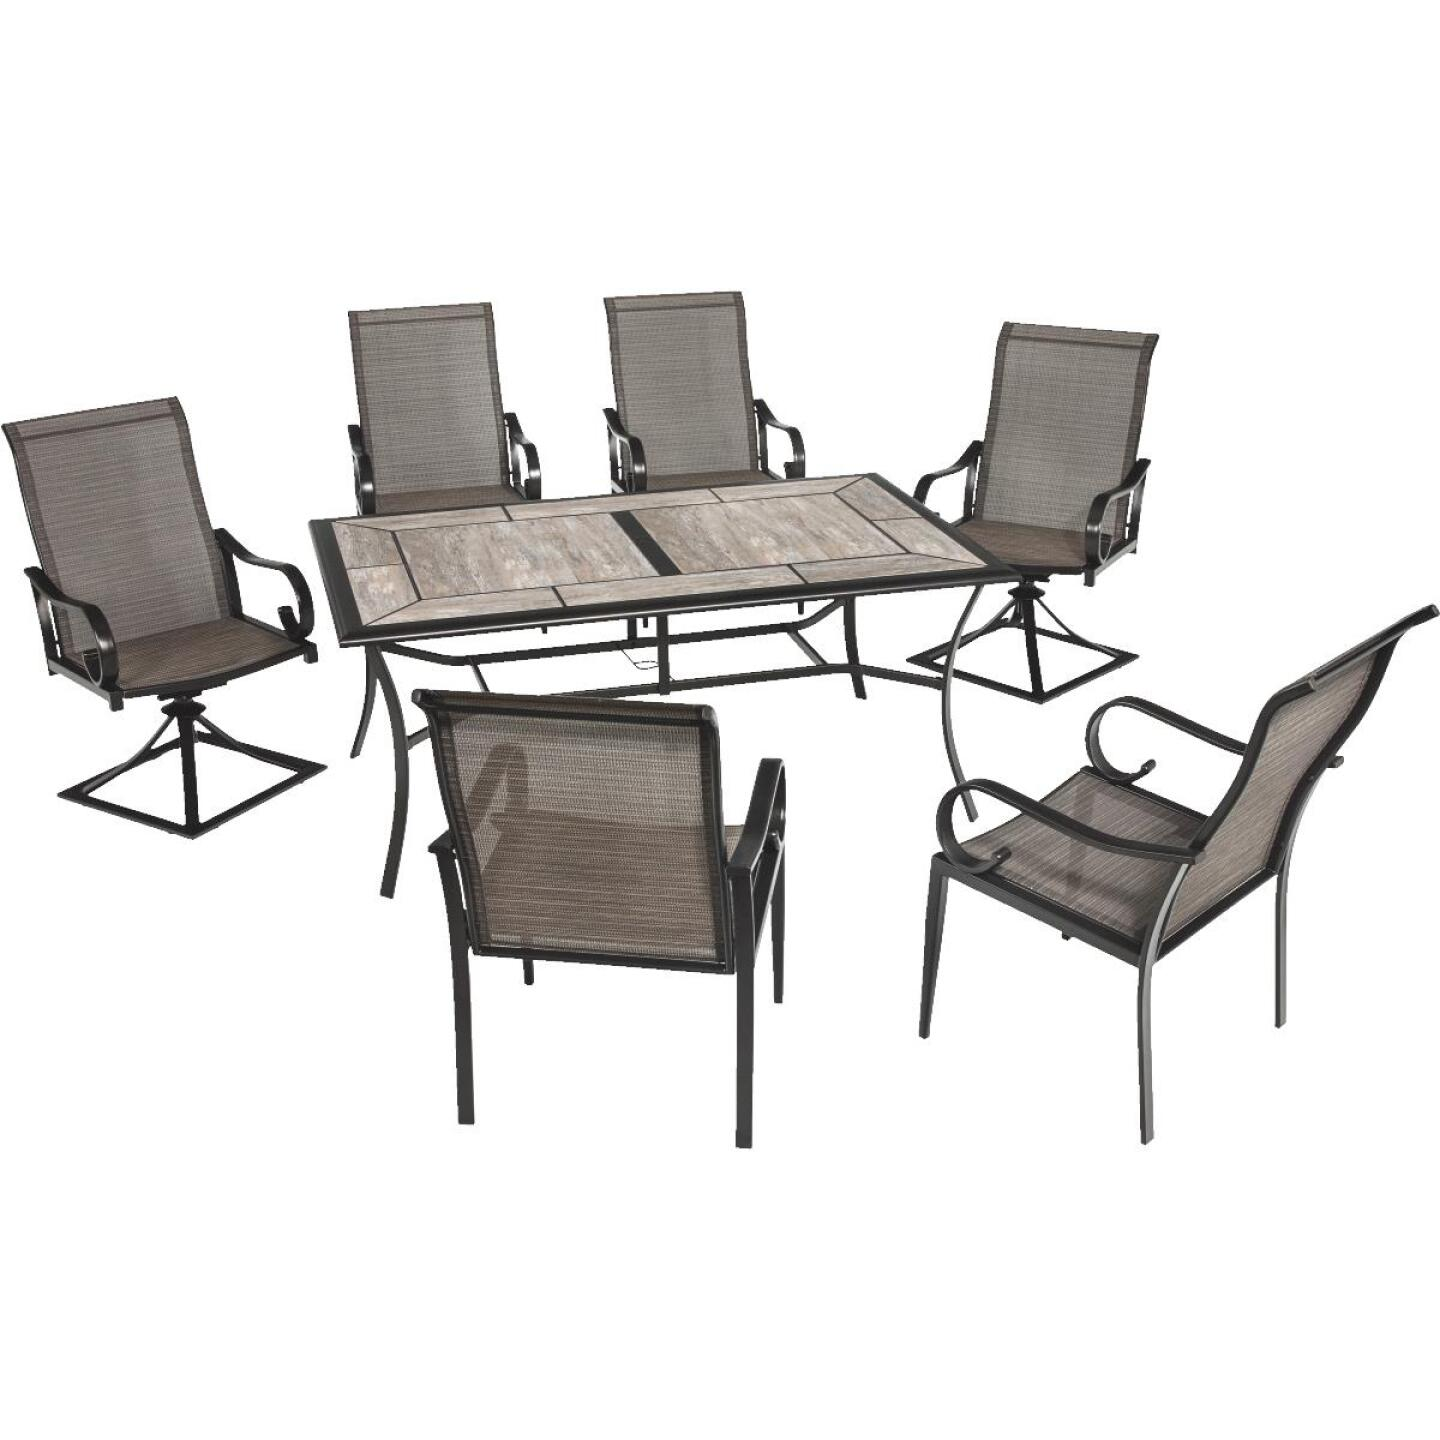 Outdoor Expressions Berkshire 7-Piece Dining Set Image 139